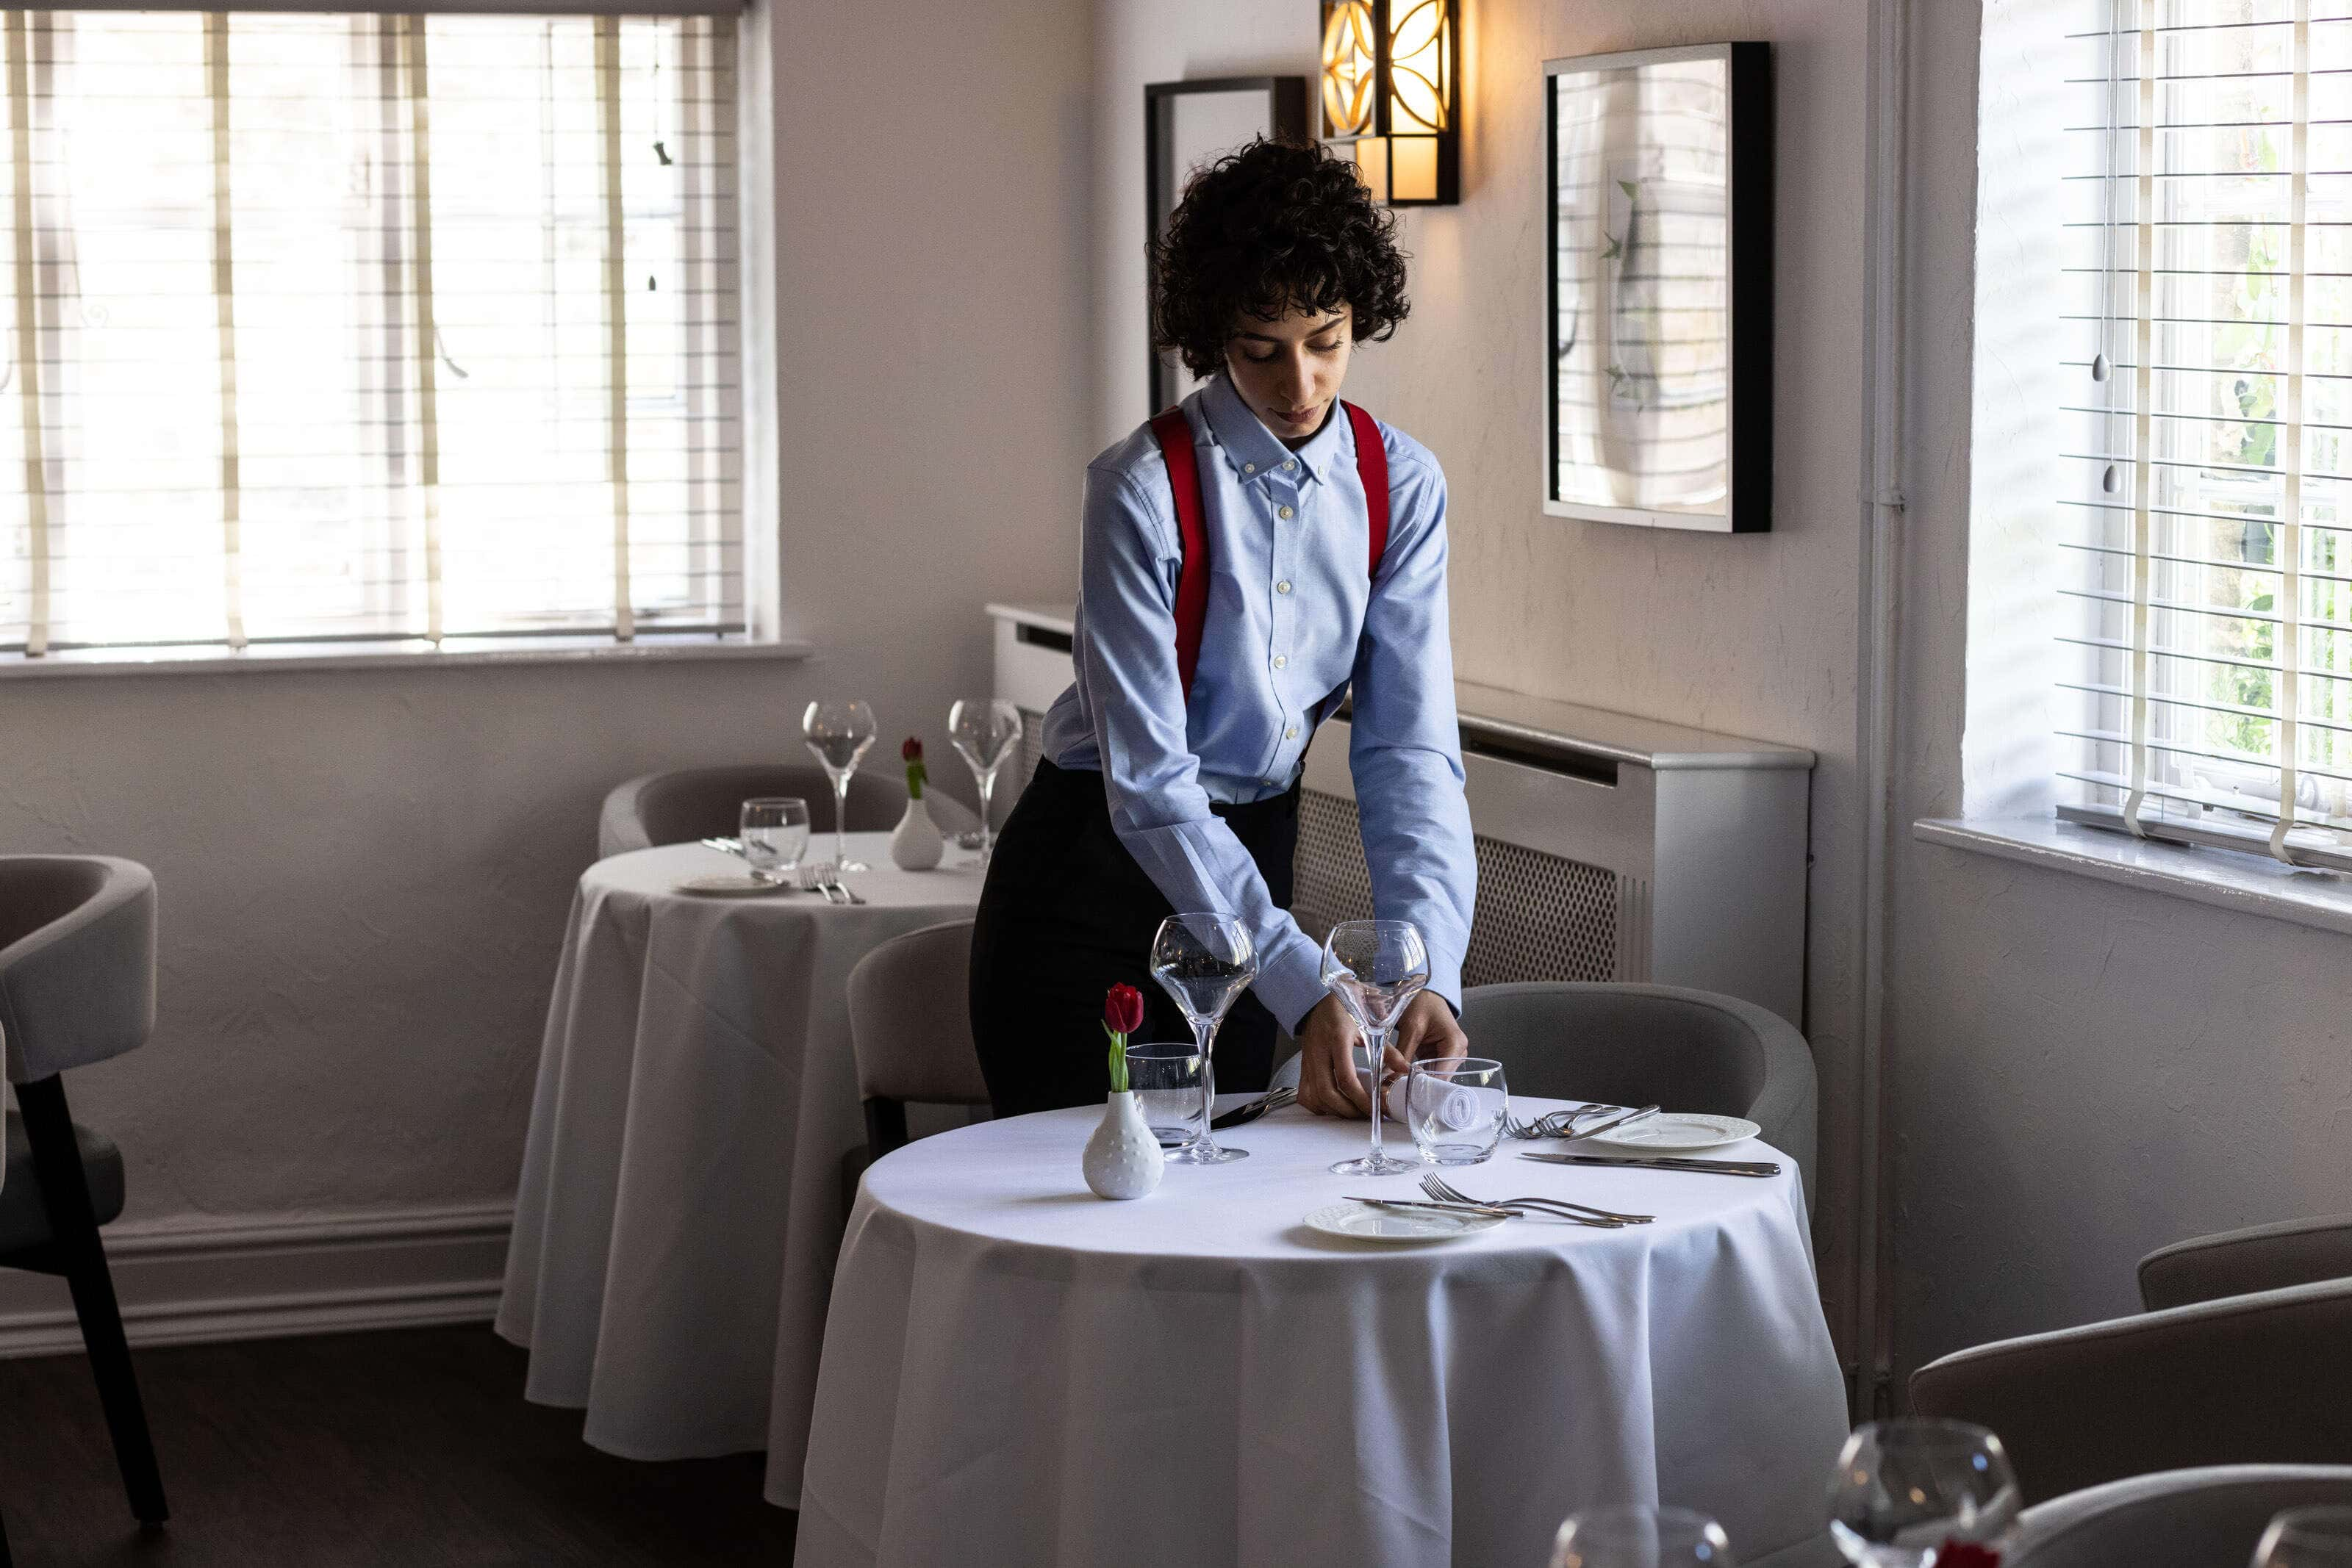 waitress laying a table